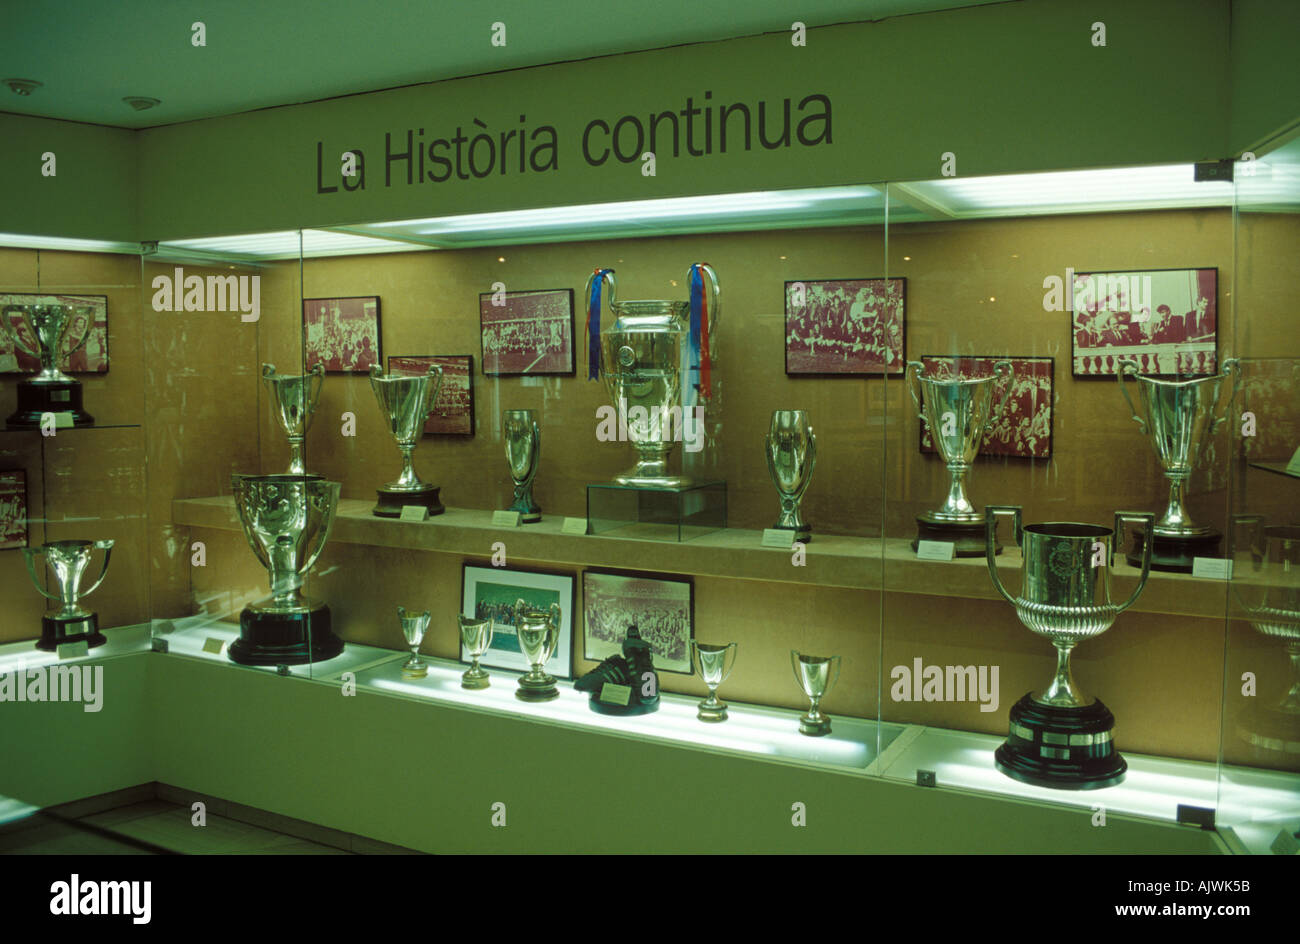 The Barcelona FC trophy room at the Nou Camp Stadium - Stock Image